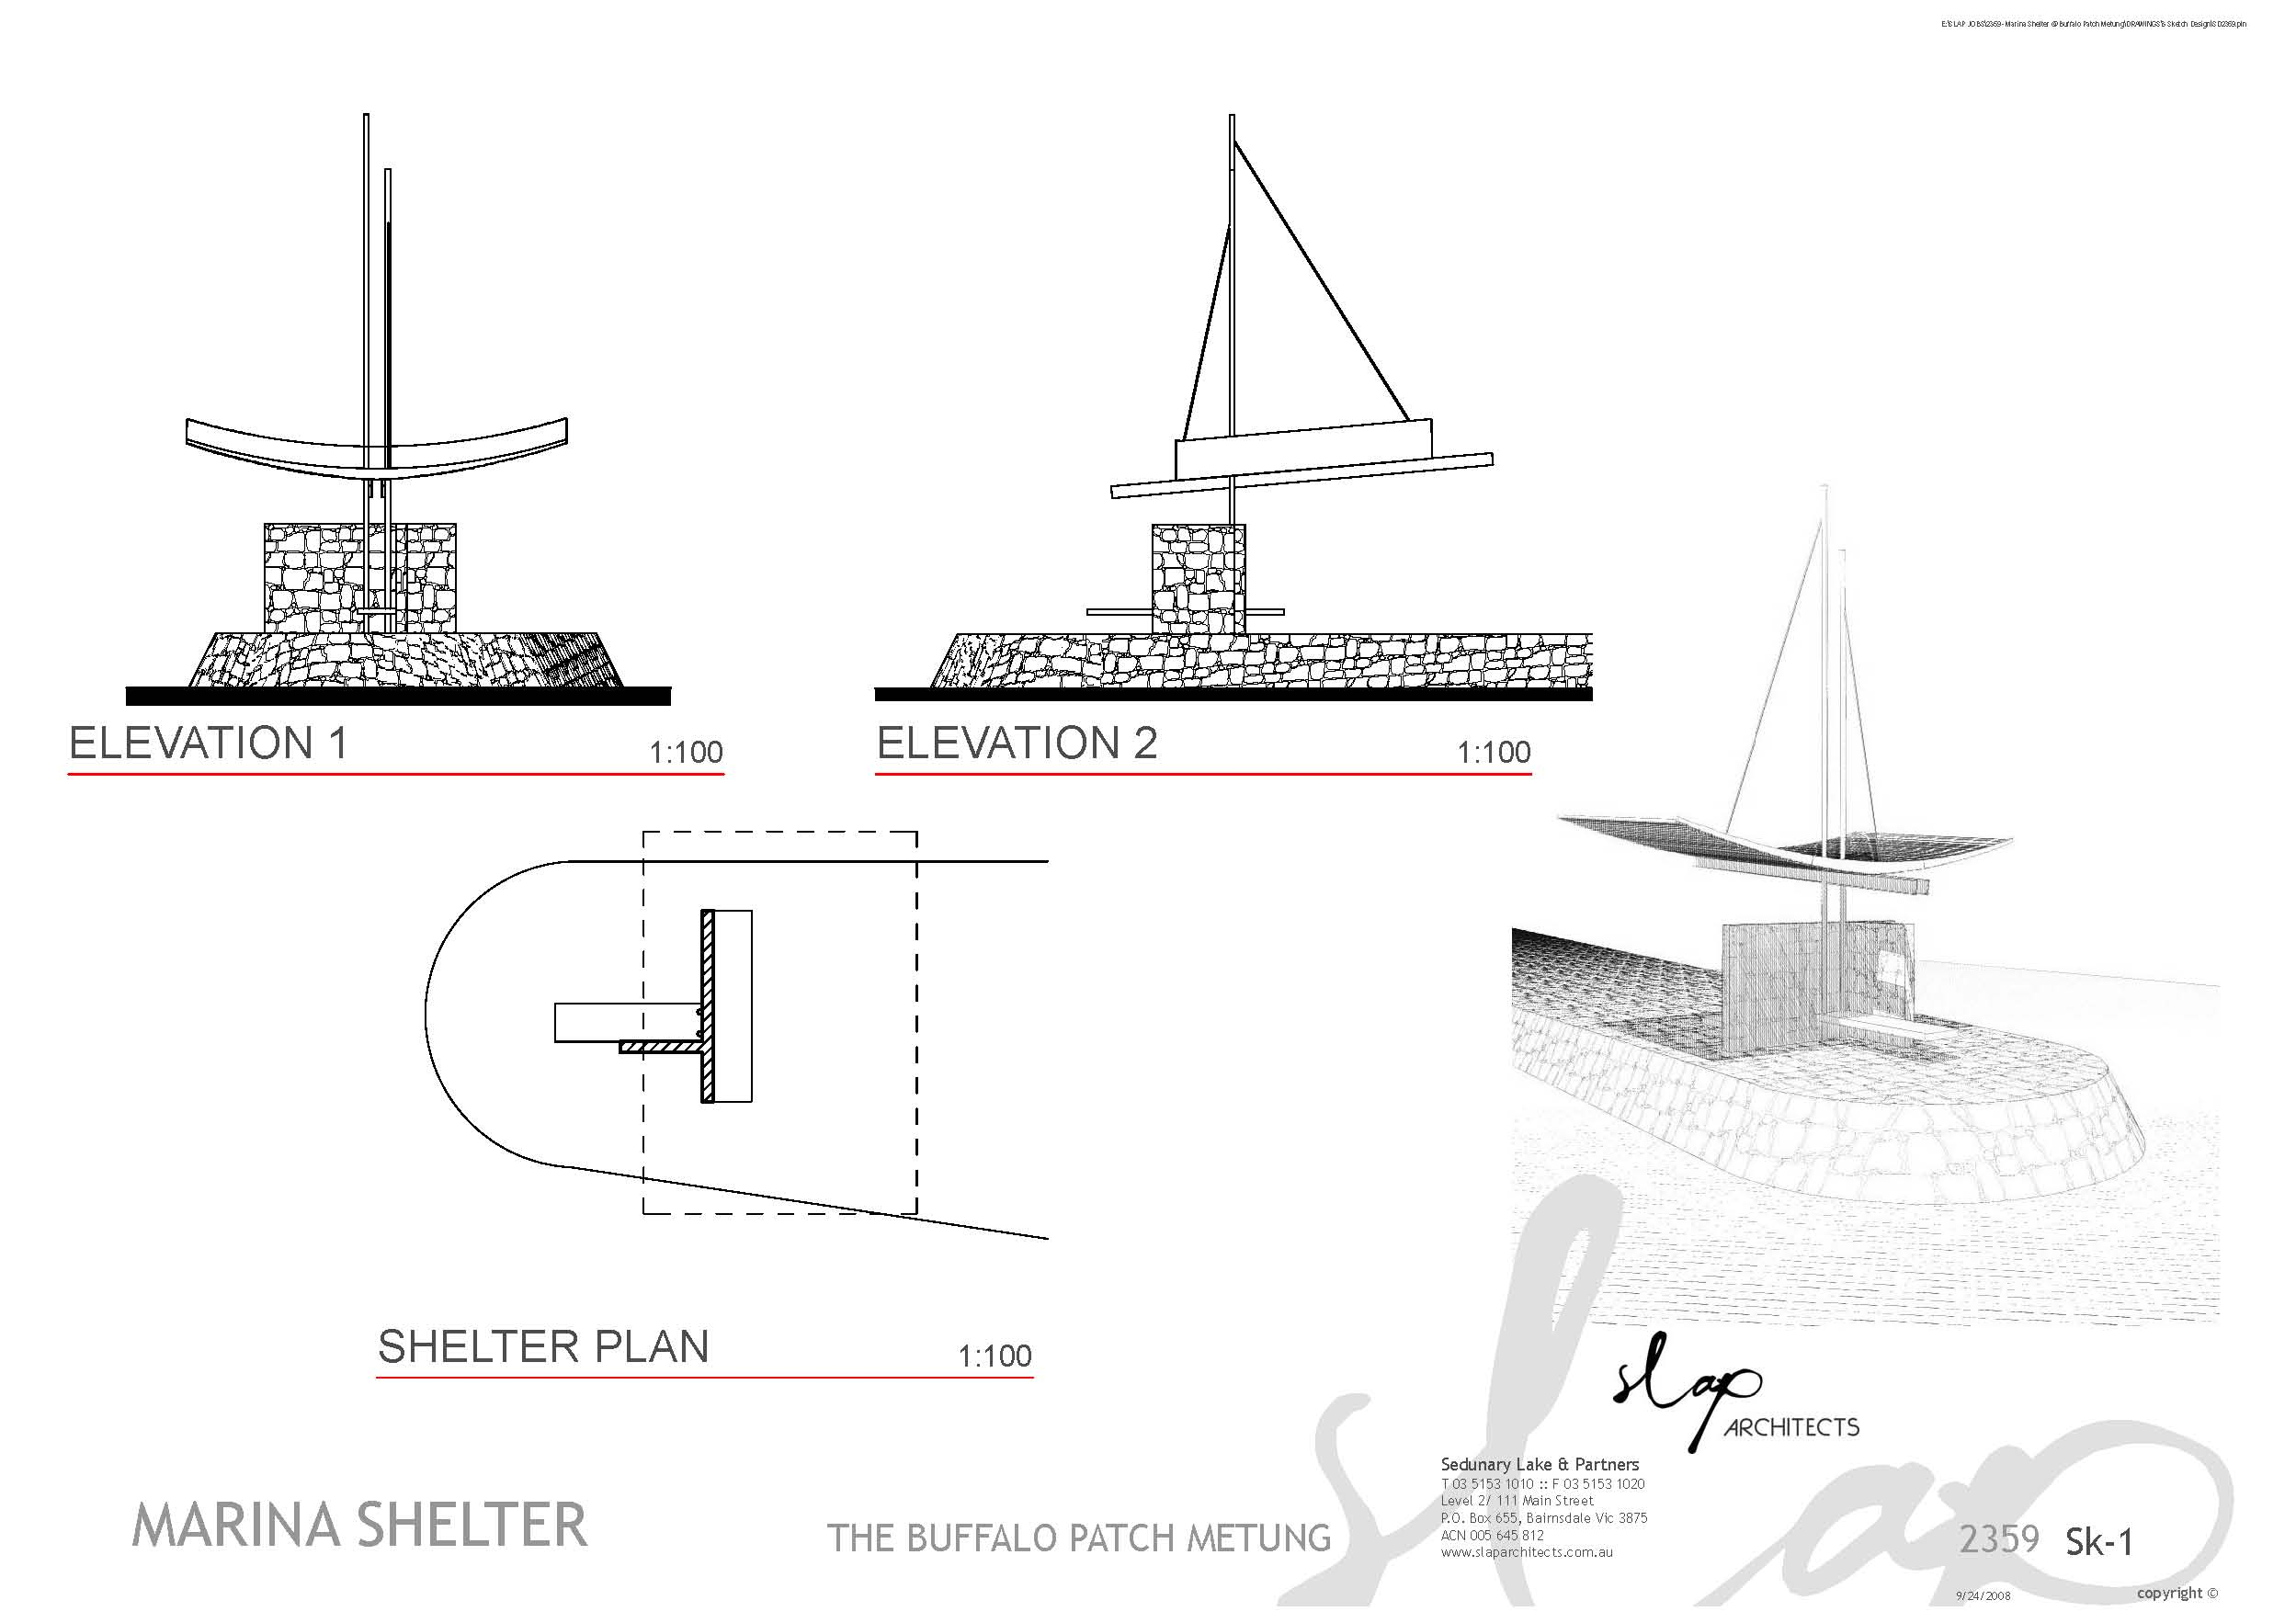 COM_CIVIC_MARINA SHELTER_DWG